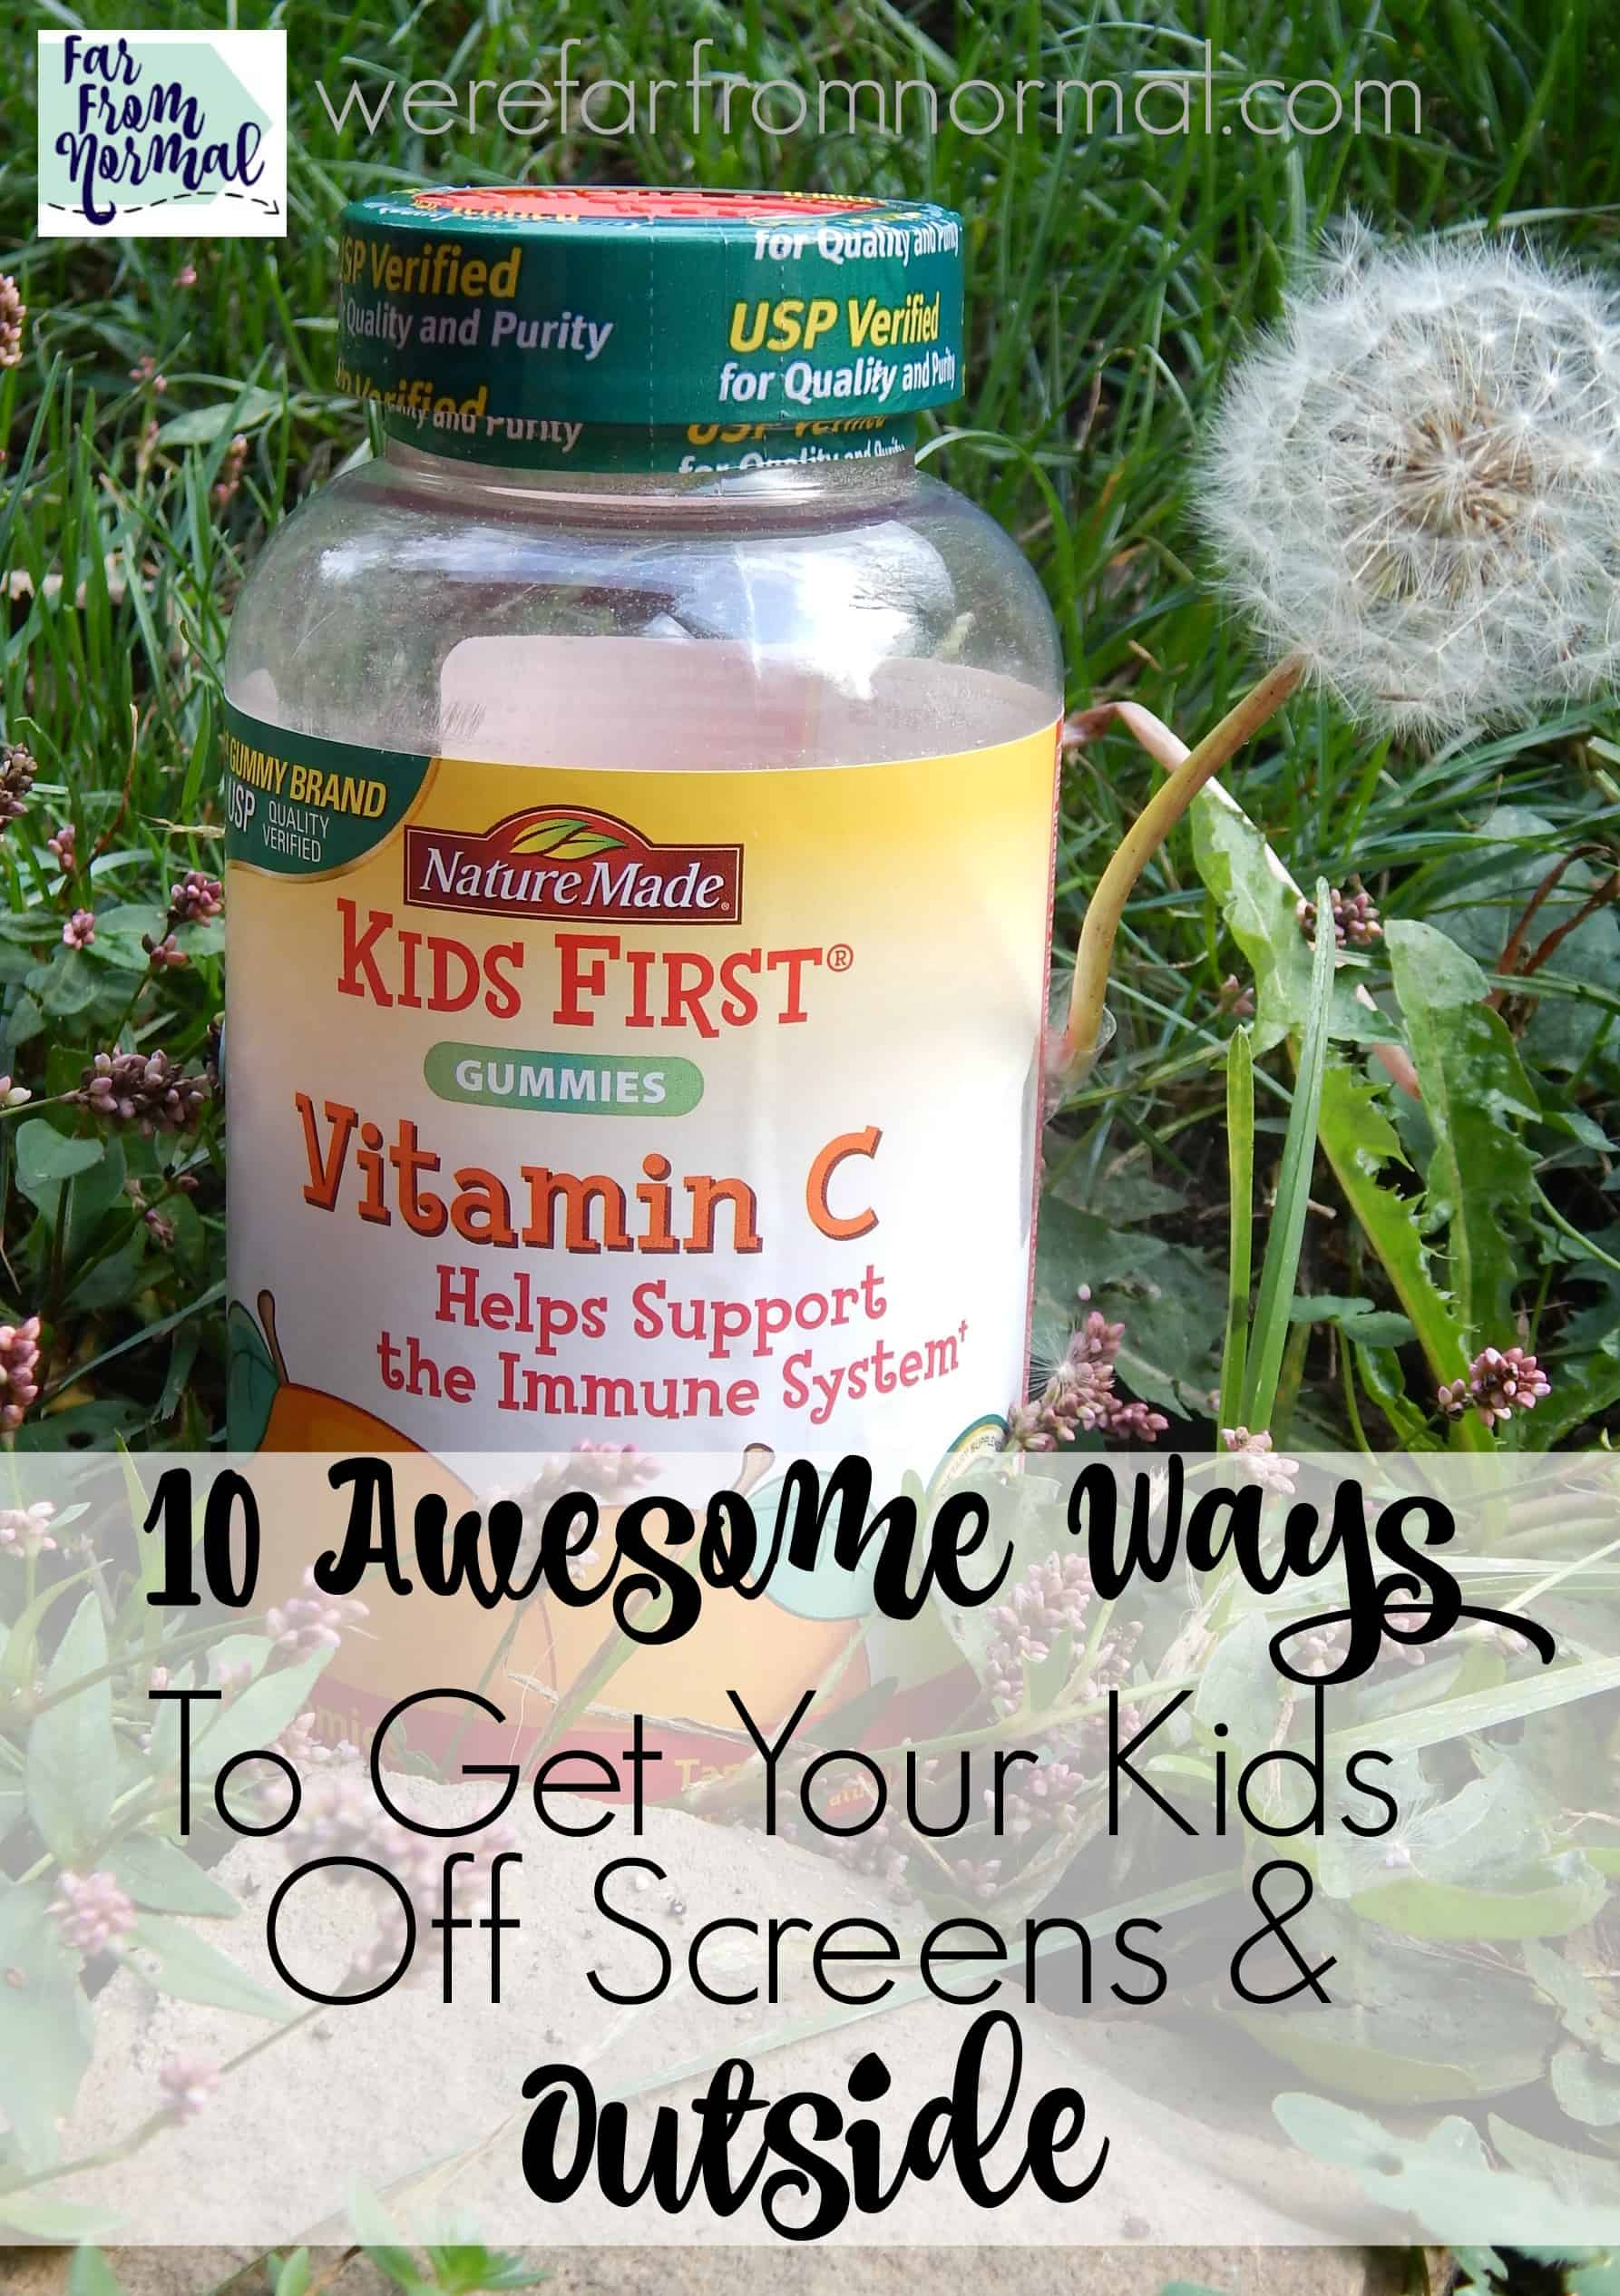 10 Awesome Ways to Get Your Kids Off Screens & Outside!